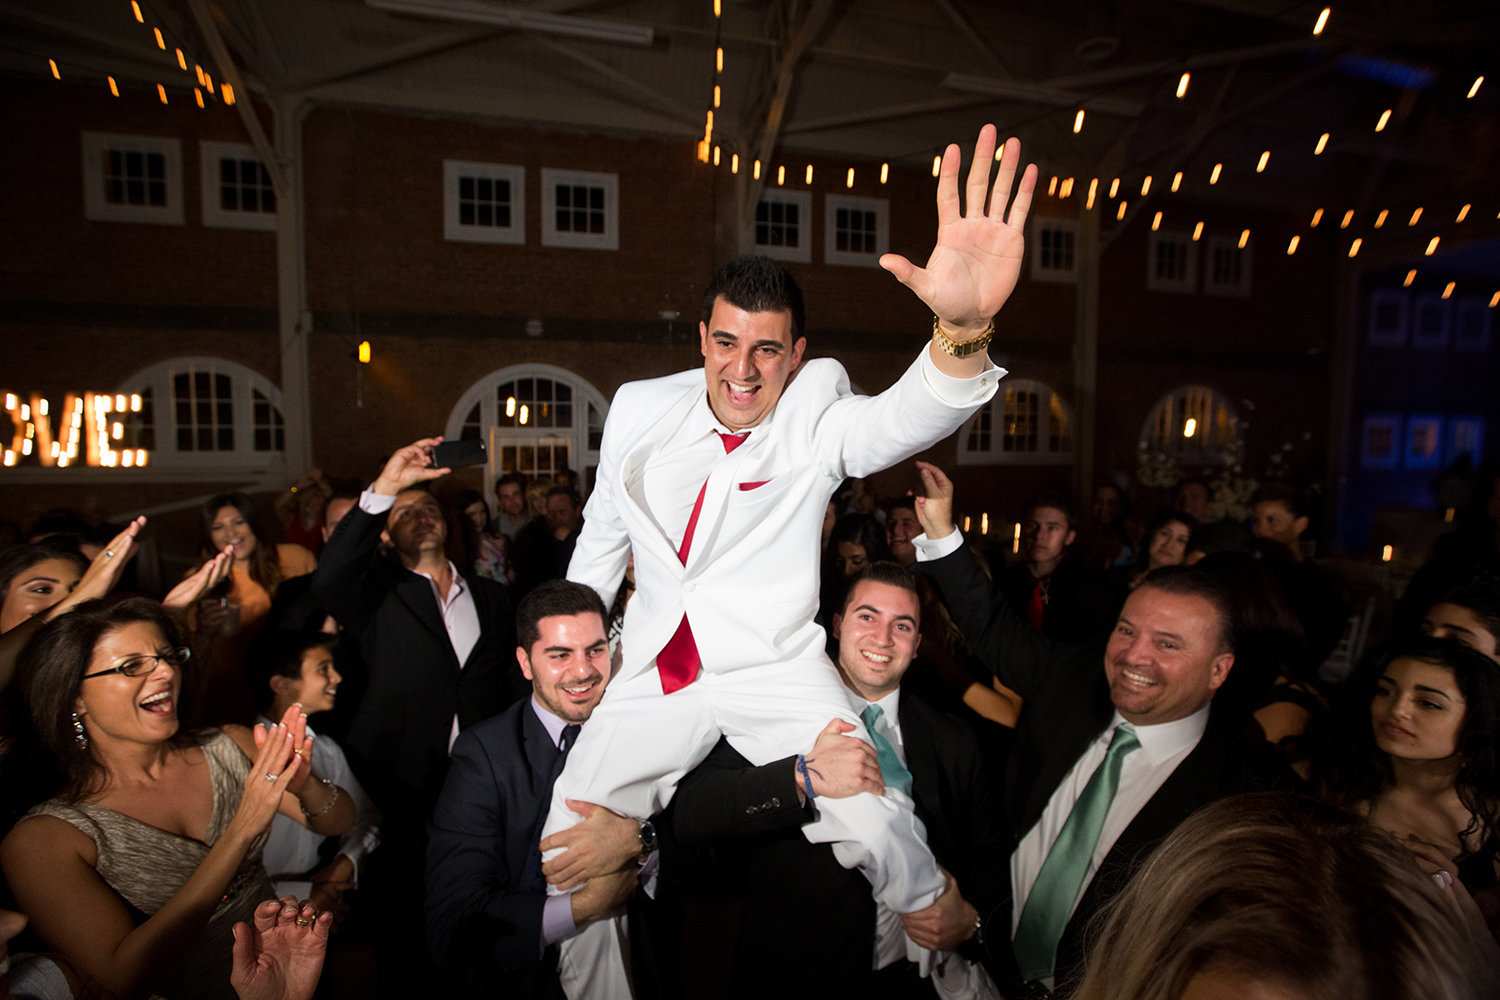 Groom flying high at the wedding reception